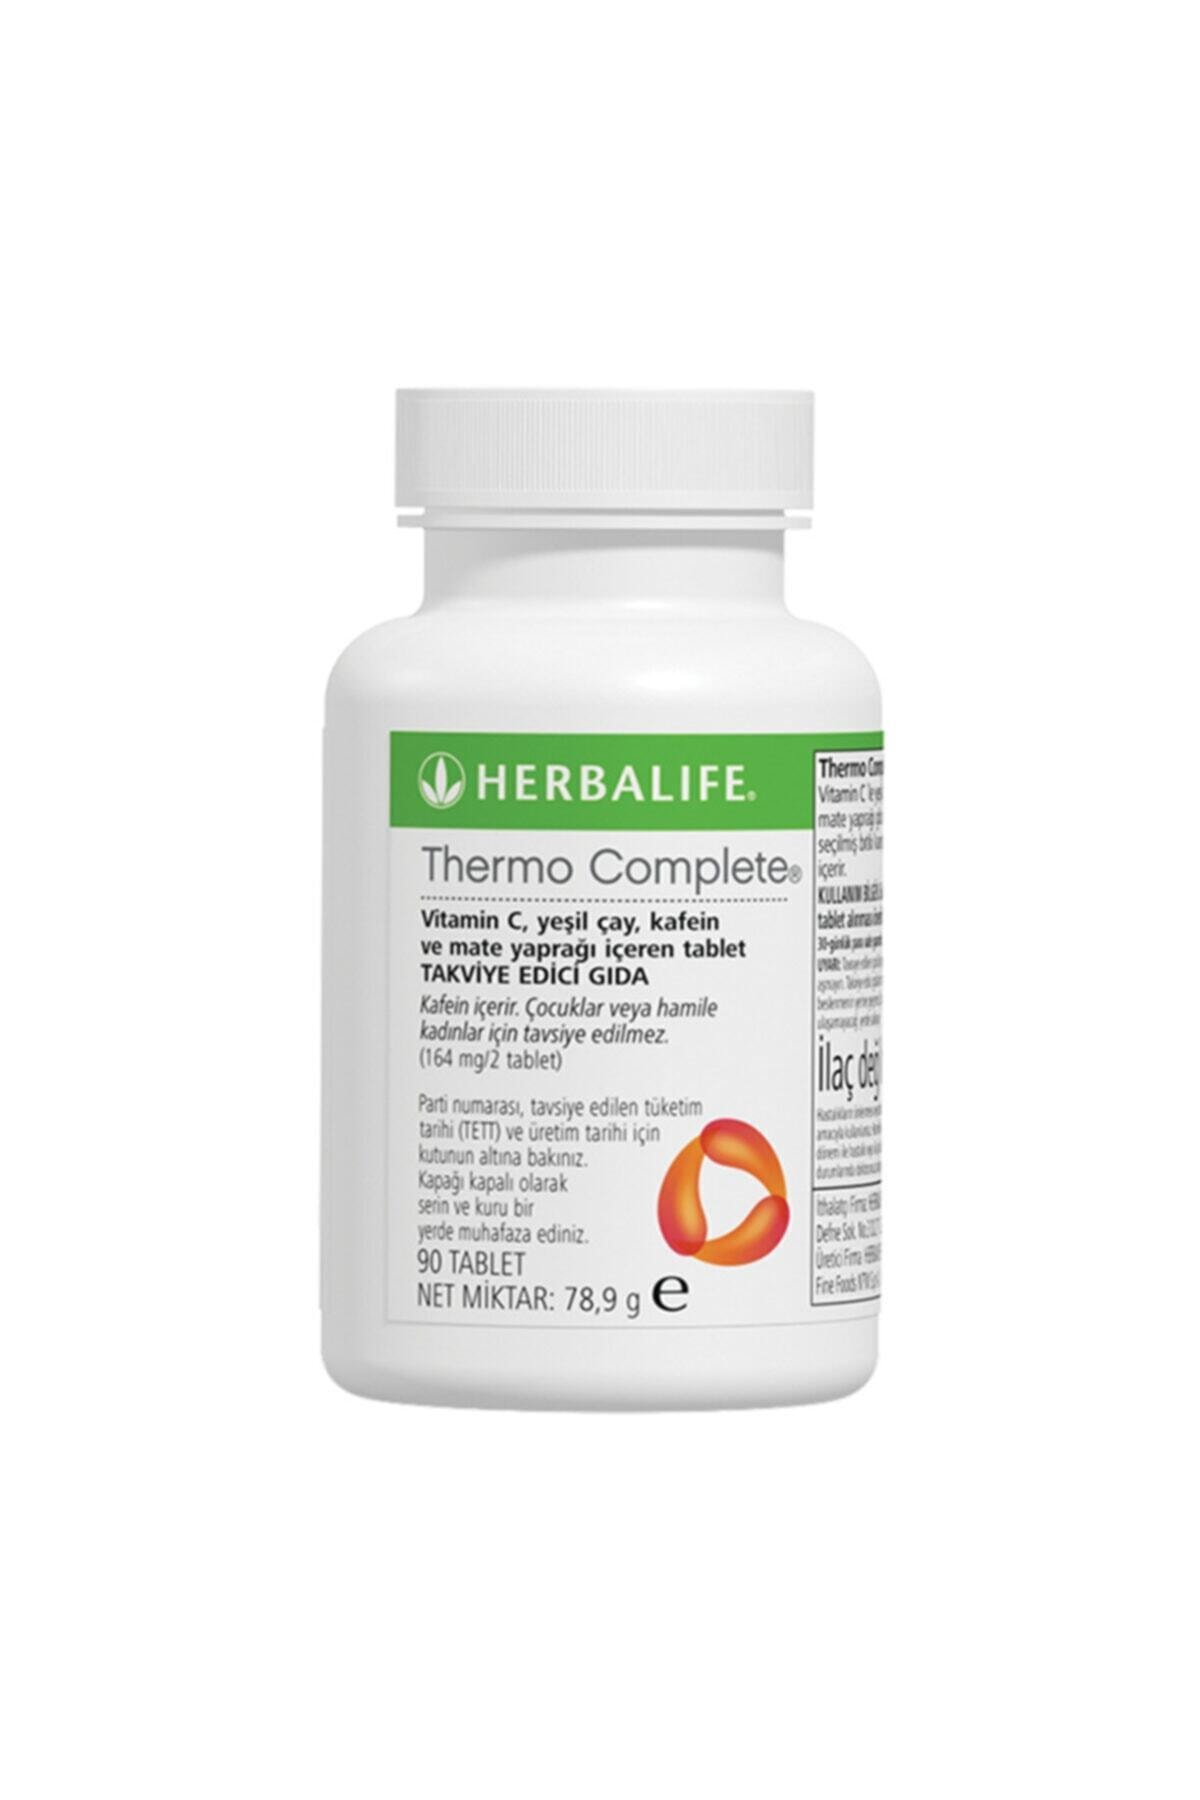 Herbalife Thermo Complete 90 Tablet 1